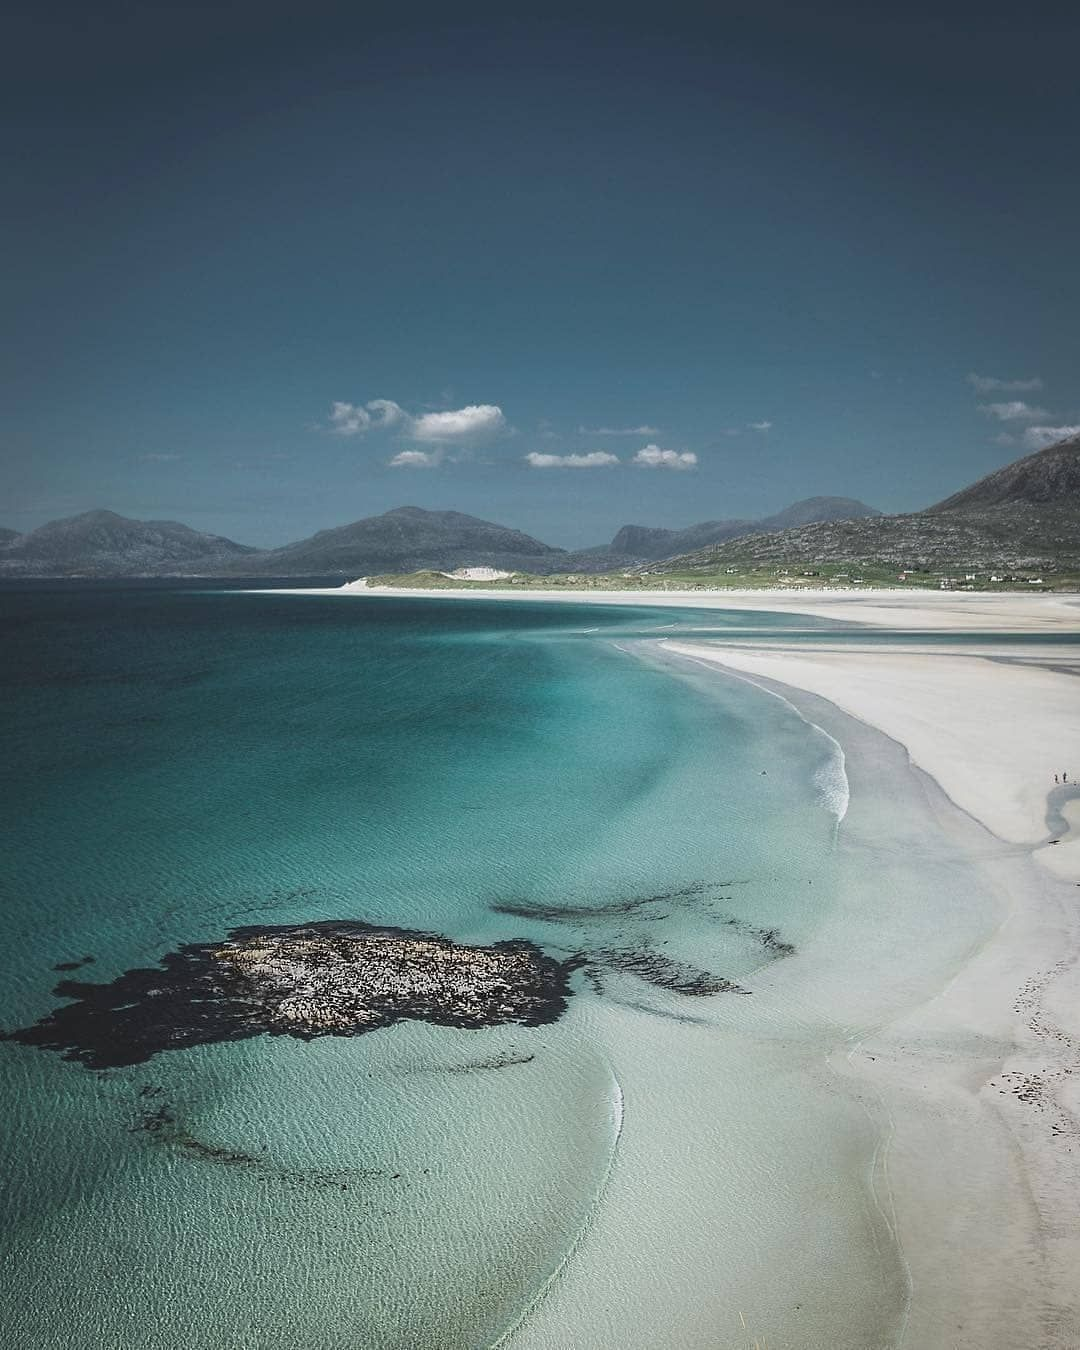 "Hidden Scotland on Instagram: ""The Outer Hebrides are a collection of 119 islands, 14 of which are inhabited.  In these un-spoilt, peaceful and remote islands you will…"" #outerhebrides"